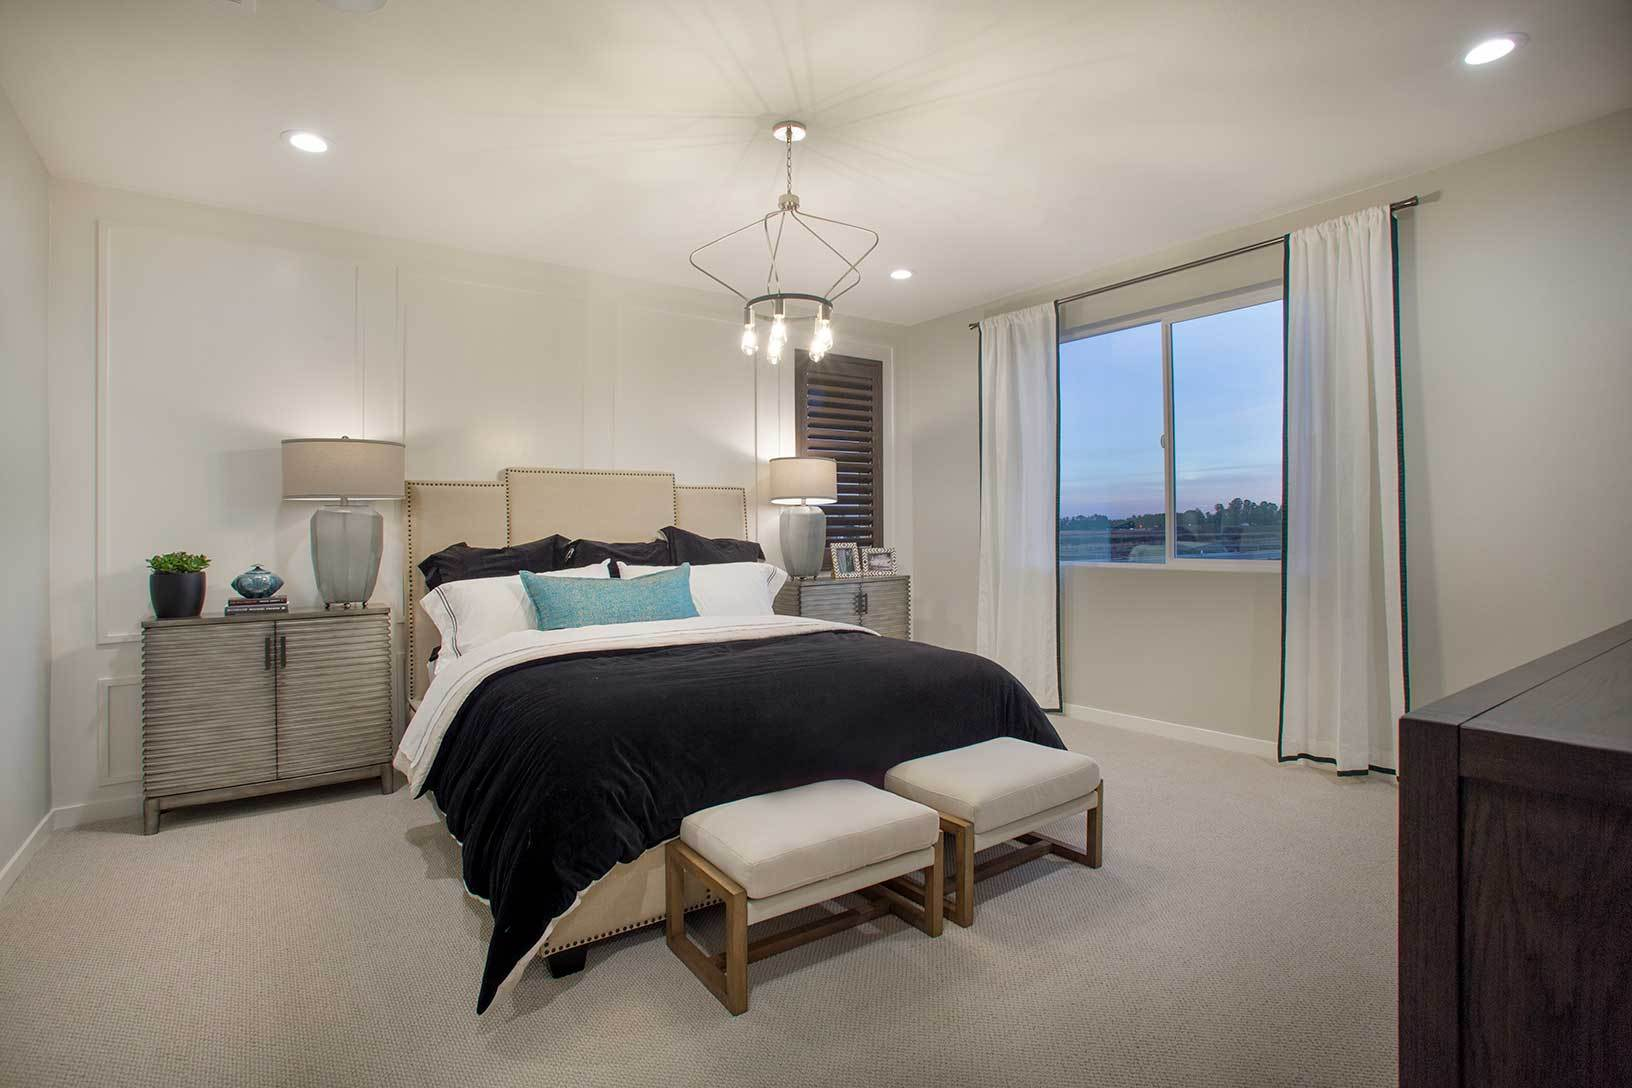 Bedroom featured in the Residence 4 By TRI Pointe Homes in Vallejo-Napa, CA